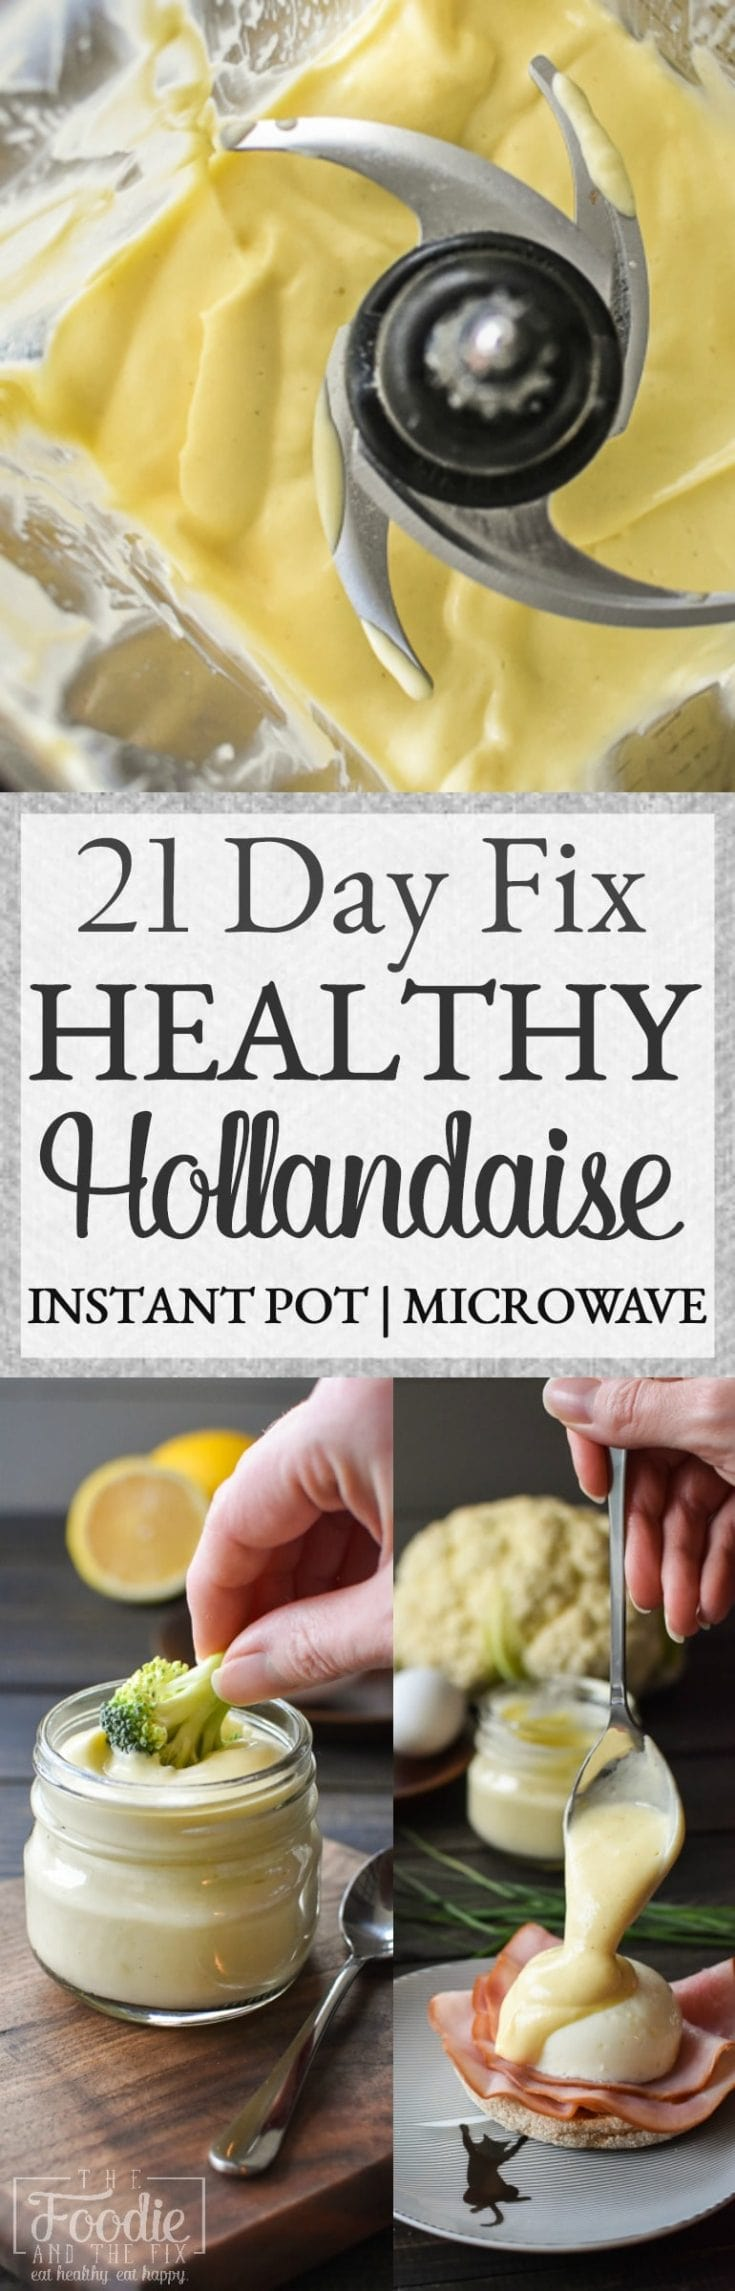 This easy, healthy hollandaise sauce recipe uses a secret ingredient to cut the calories and fat while keeping all of the silky rich deliciousness. It's great with eggs for breakfast AND to go with veggies! #21dayfix #instantpot #healthy #kidfriendly #glutenfree #breakfast #veggies